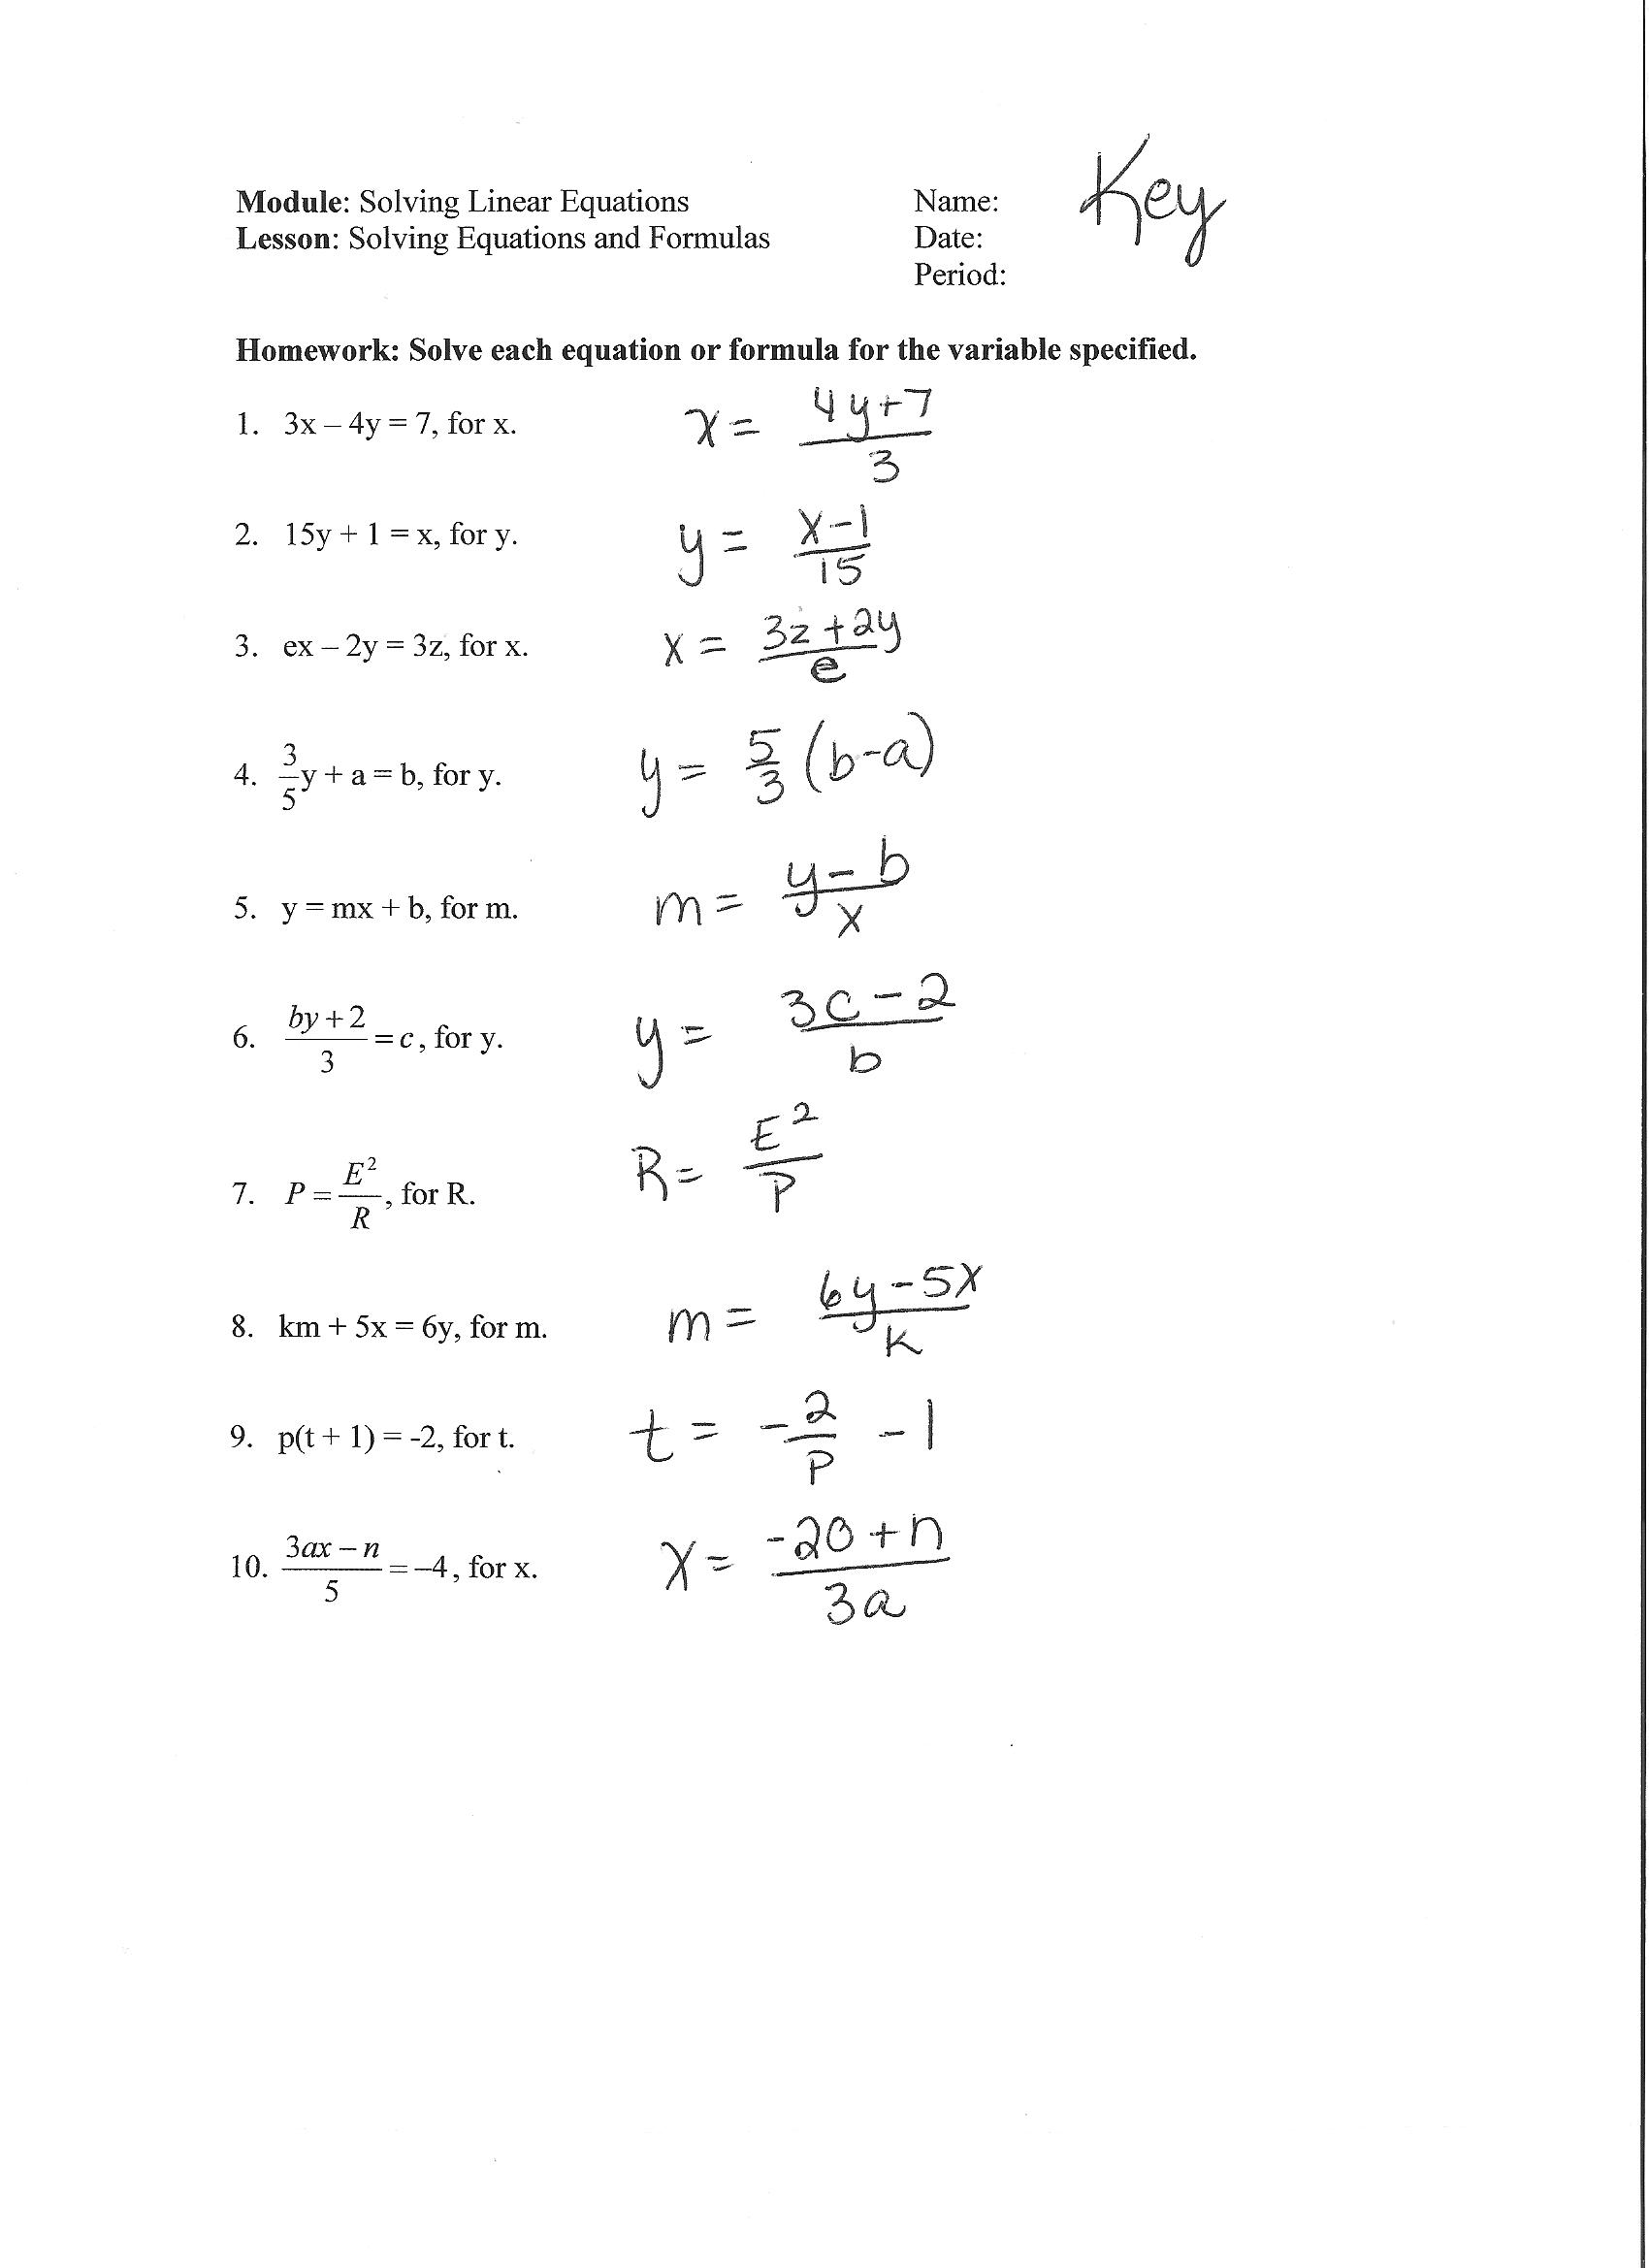 worksheet Rearranging Equations Worksheet teacher sheila mitchell content area algebra i grade level 9 date day overviewannotation this lesson contains a powe